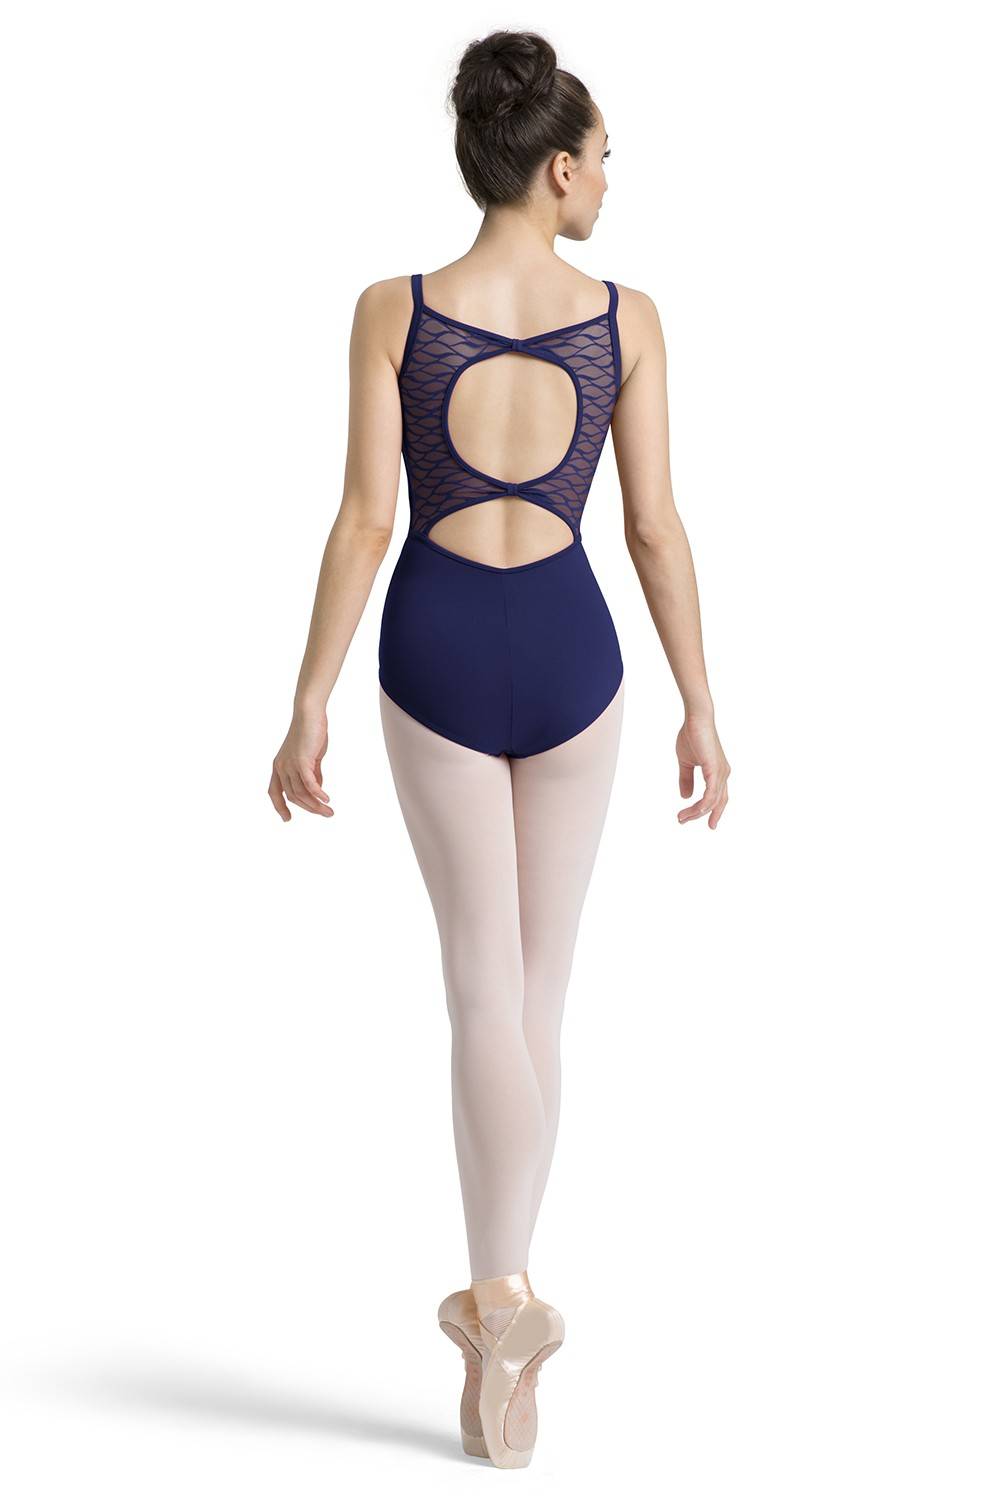 Body Con Spalline Sottili E Design A Fiocco Sul Retro Womens Camisole Leotards